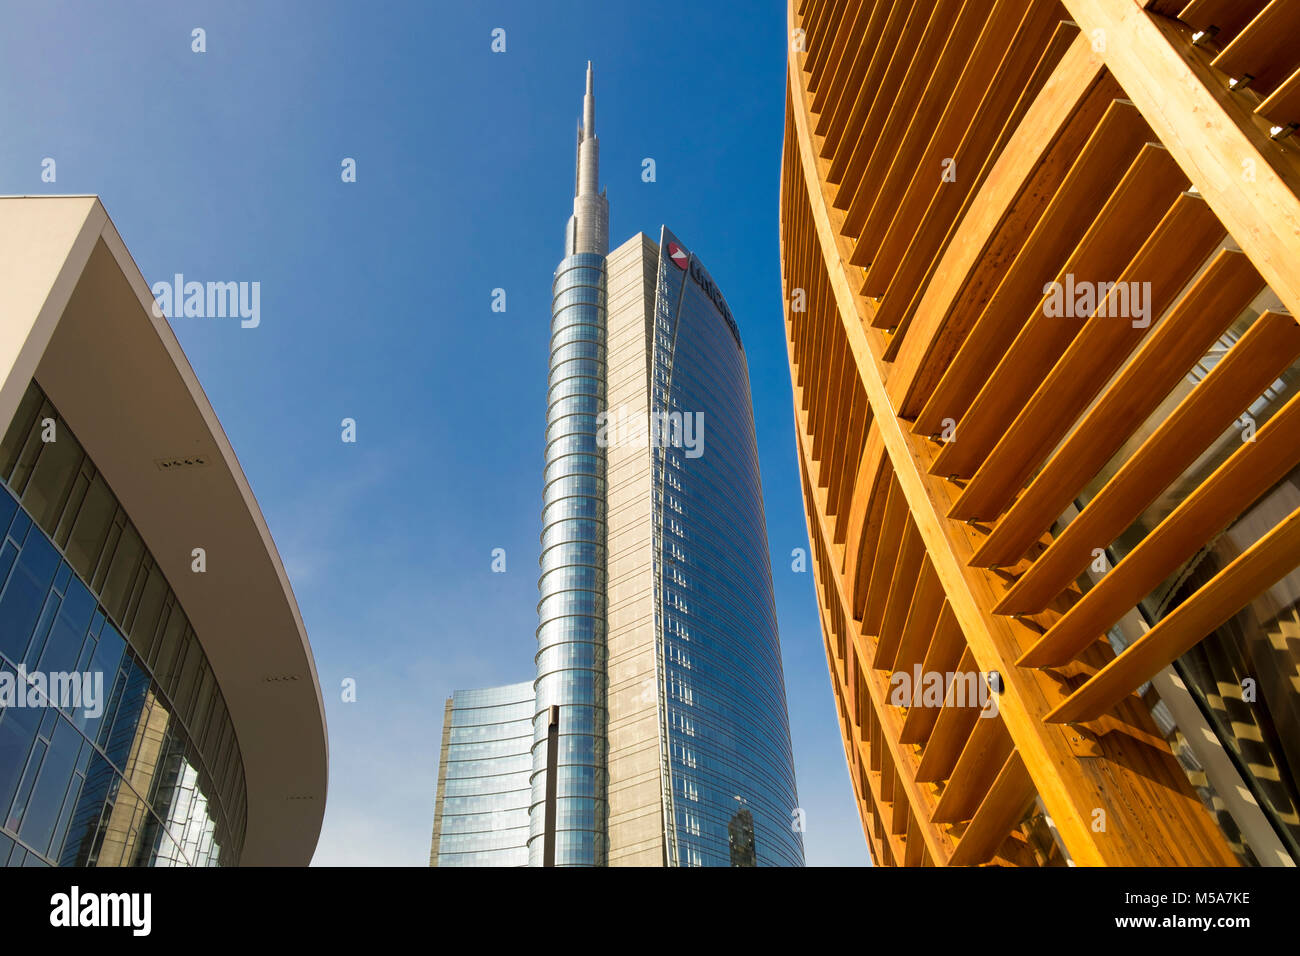 Modern architecture - UniCredit Tower or Torre UniCredit at Porta Nuova business district, Milan, Italy, with the - Stock Image